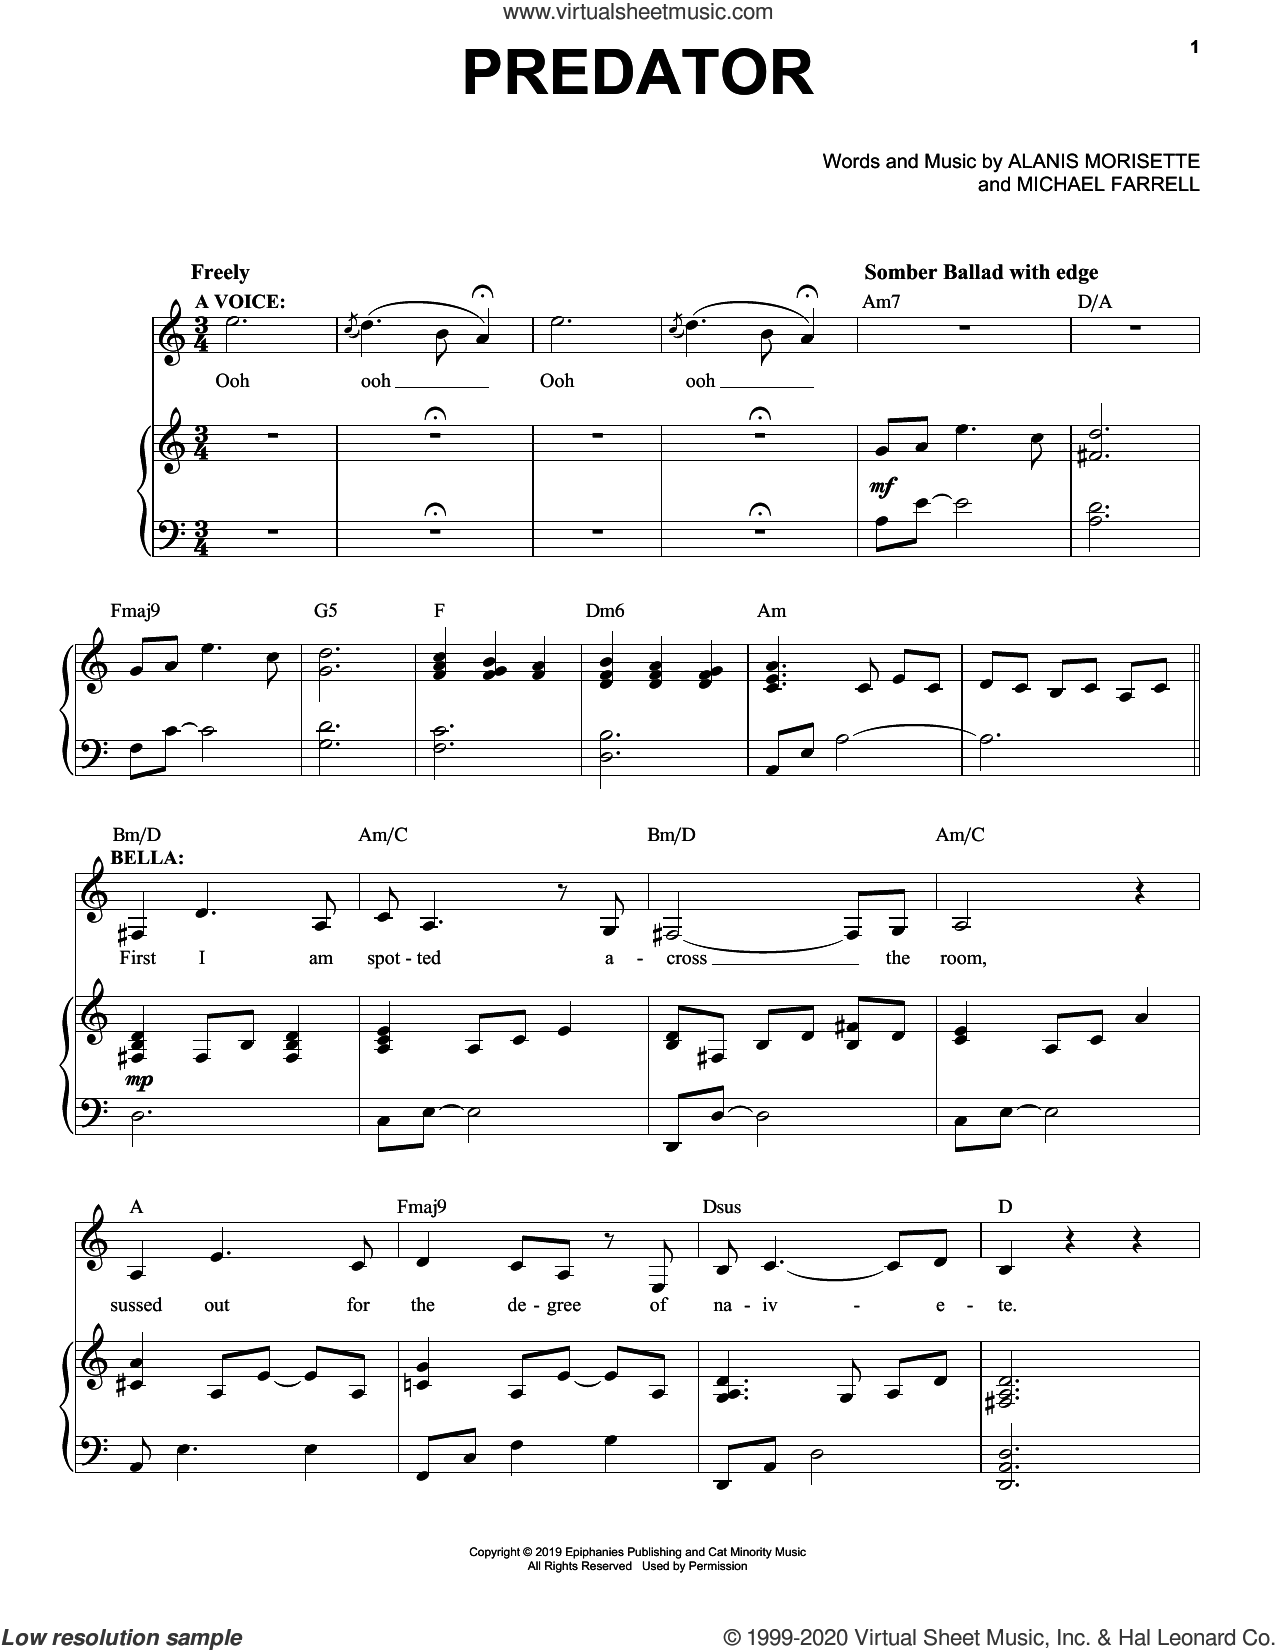 Predator (from Jagged Little Pill The Musical) sheet music for voice and piano by Alanis Morissette, Glen Ballard and Michael Farrell, intermediate skill level